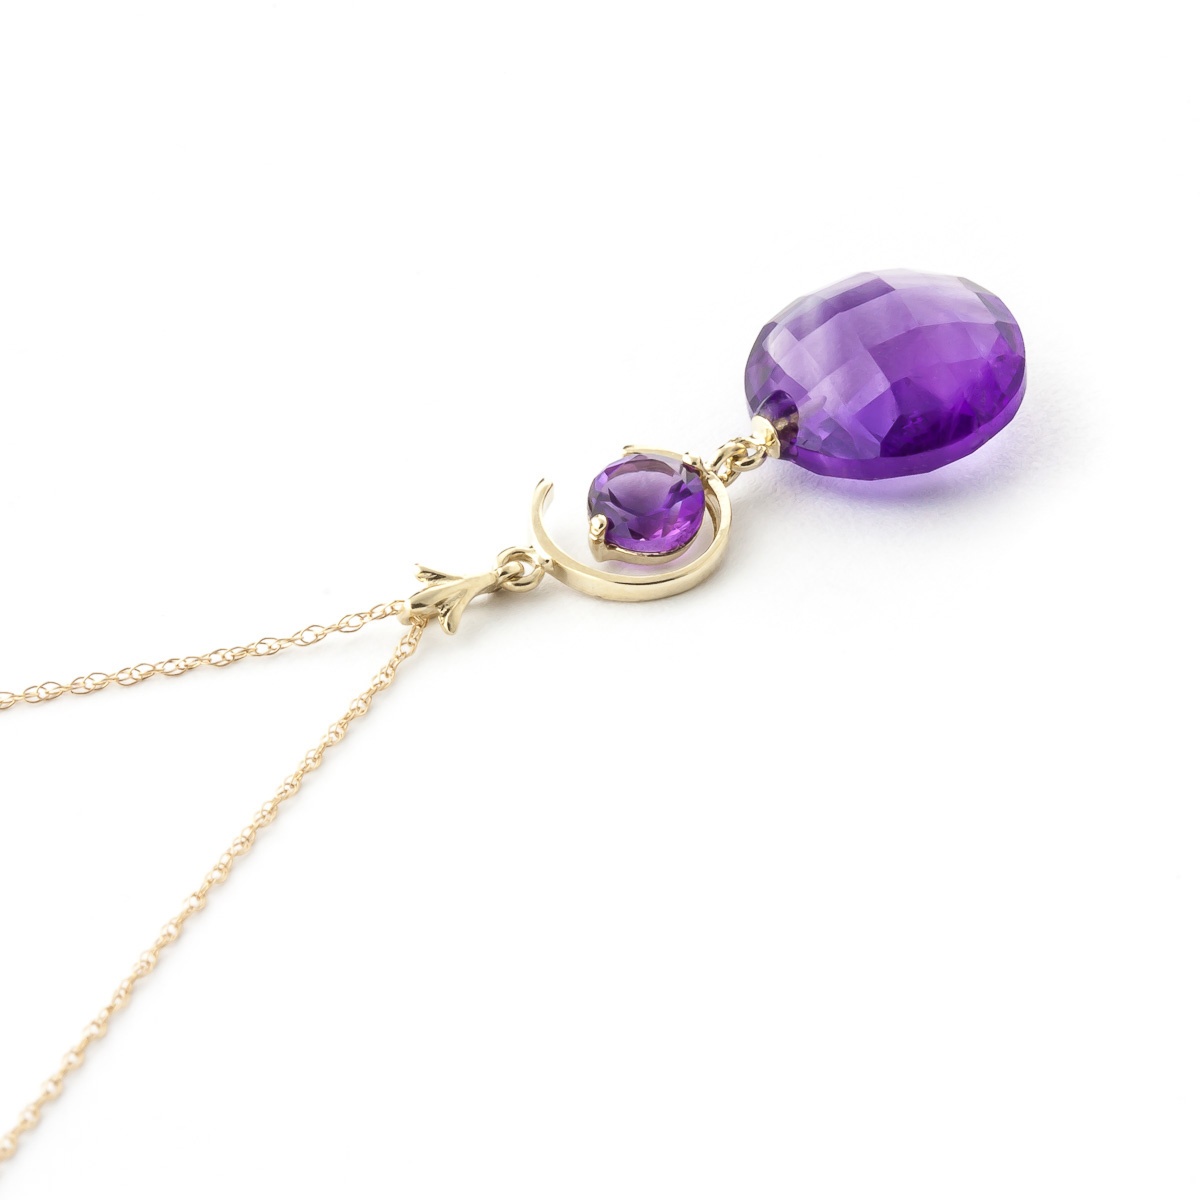 Round Brilliant Cut Amethyst Pendant Necklace 5.8ctw in 14K Gold